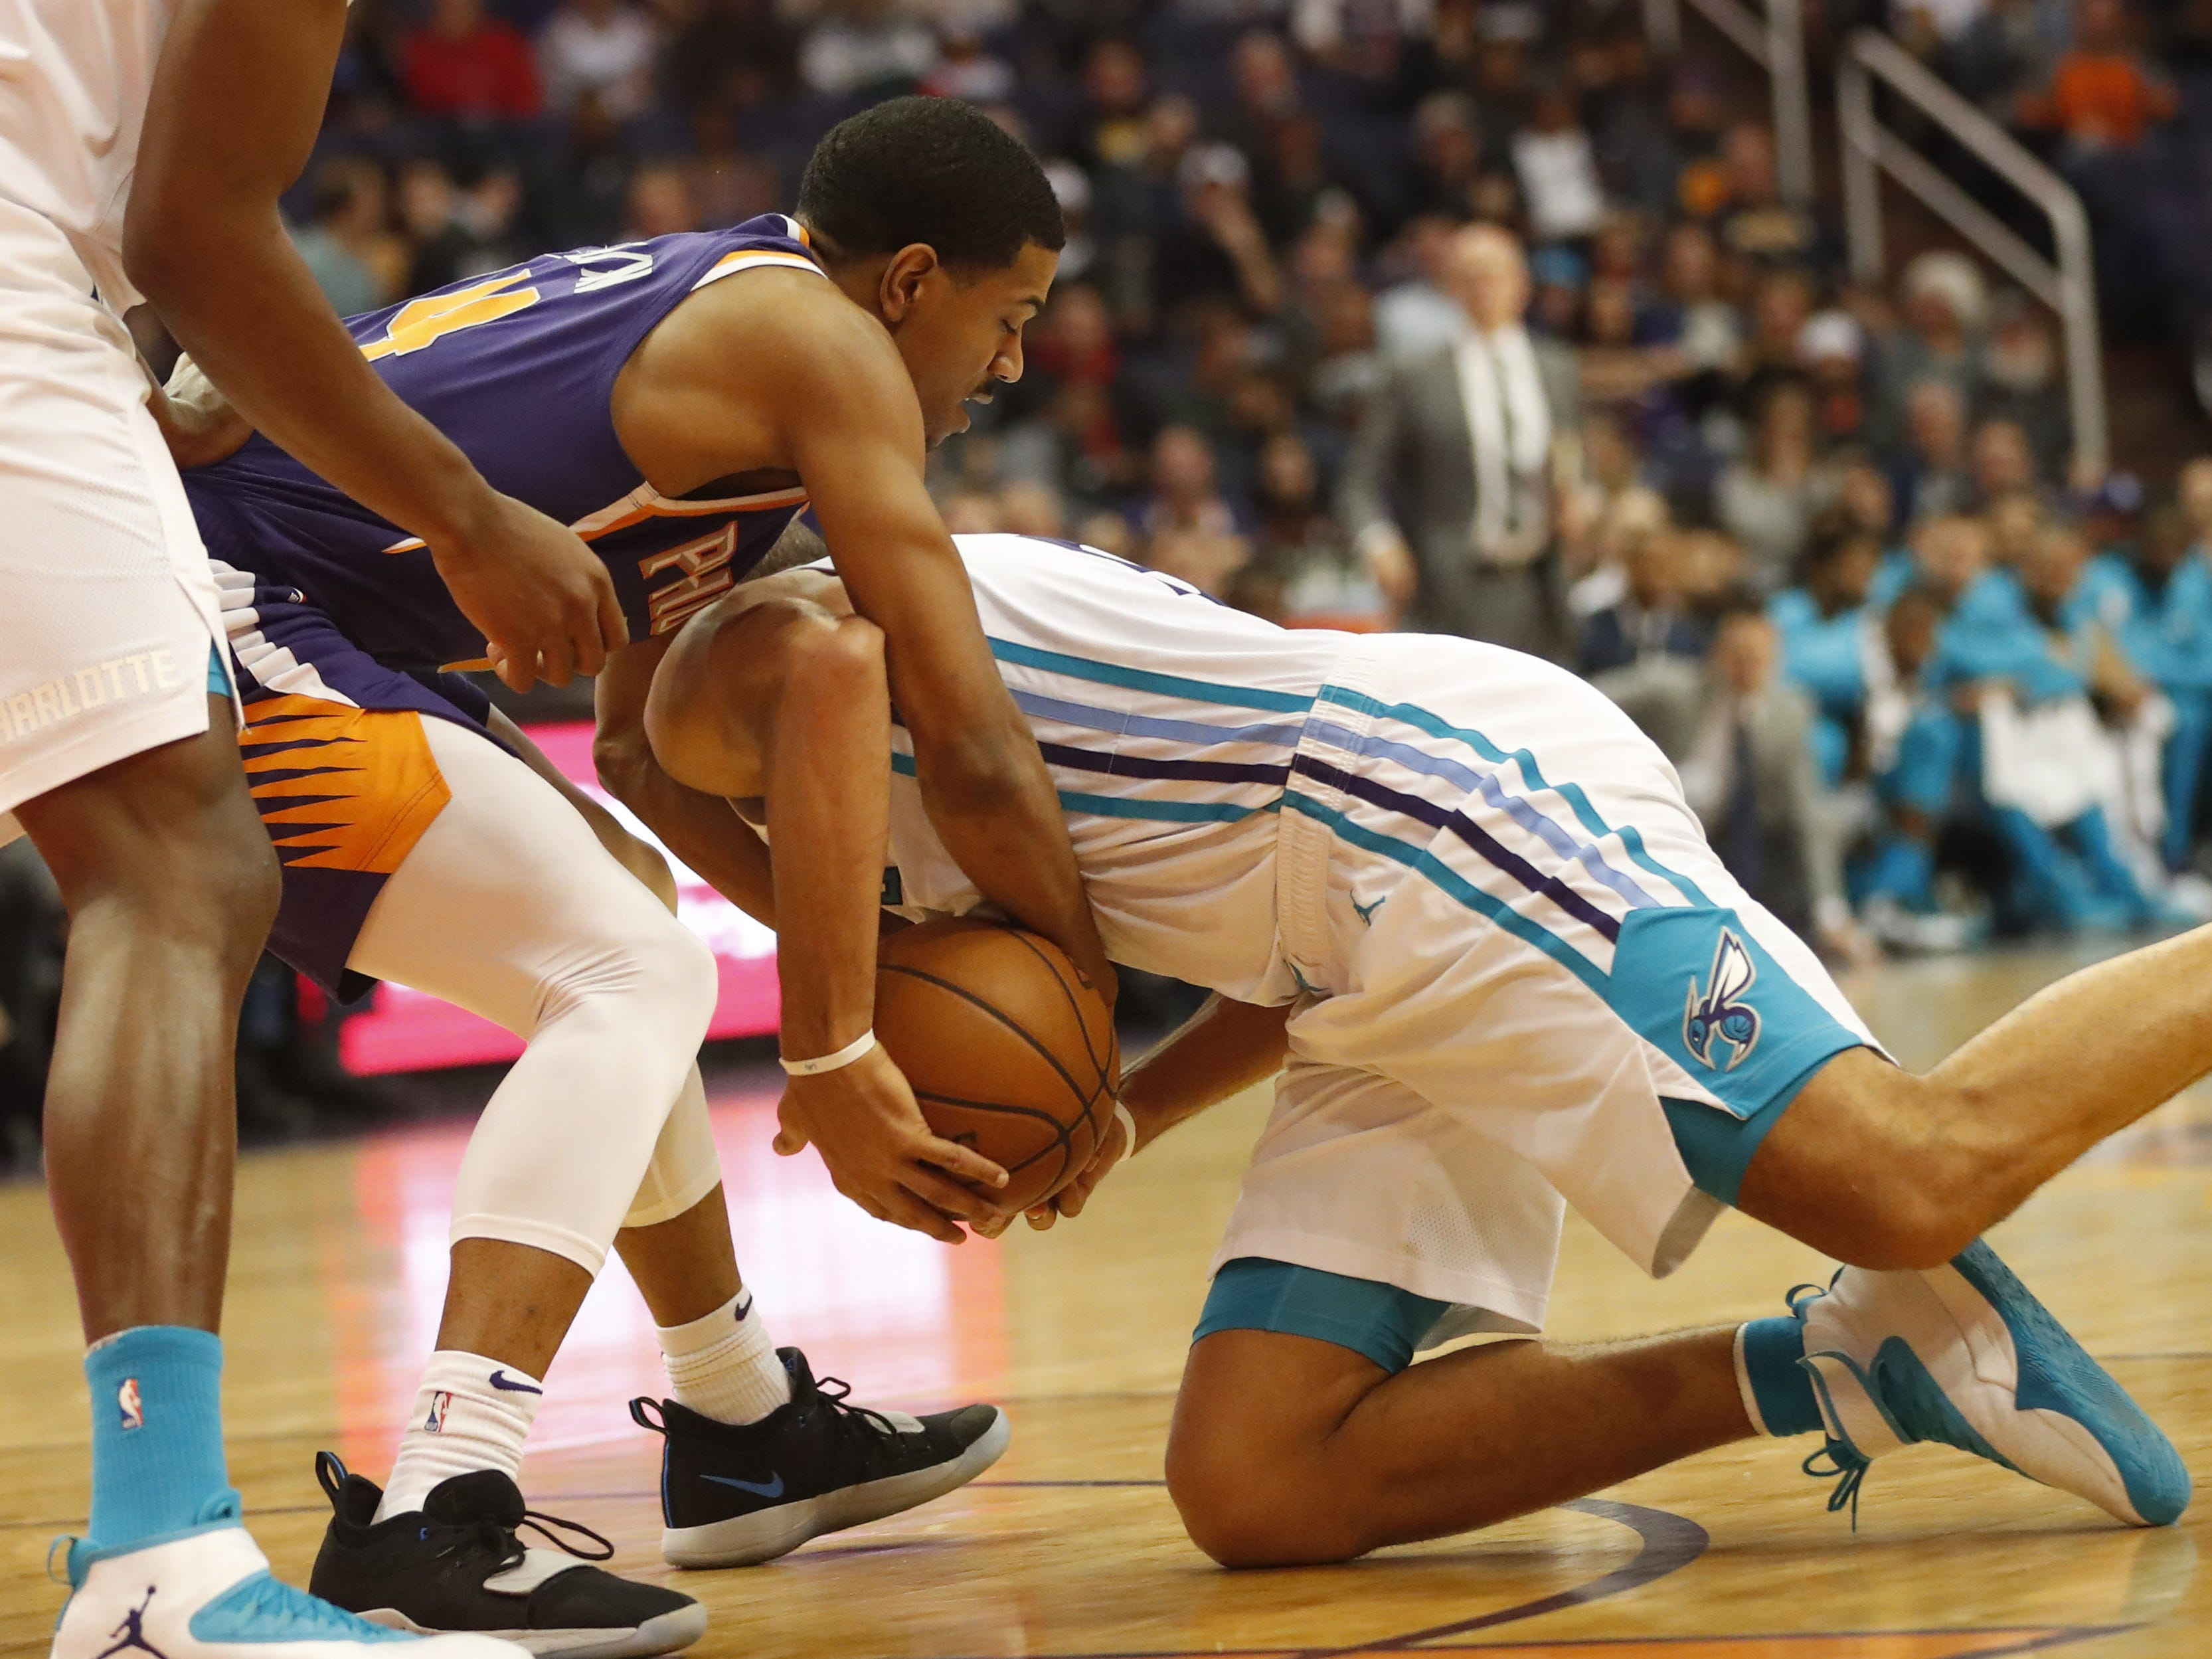 Phoenix Suns guard De'Anthony Melton (14) ties up Charlotte Hornets guard/forward Nicolas Batum (5) for the ball during the second quarter in Phoenix January 6, 2019.